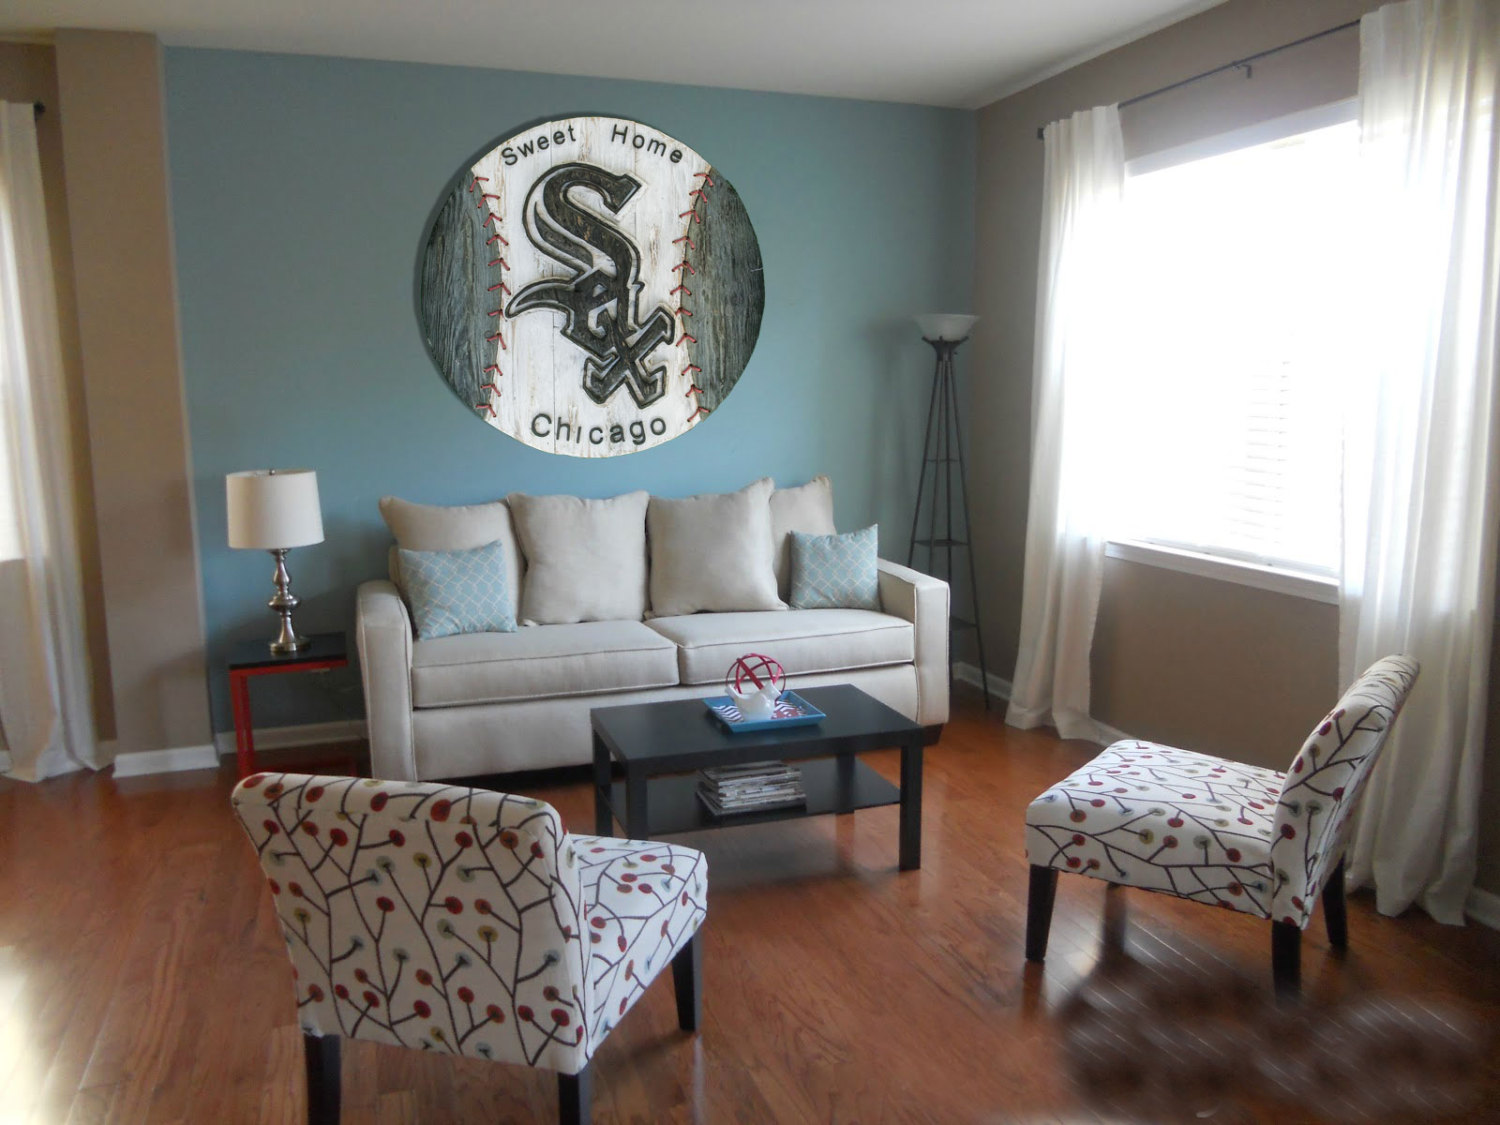 Chicago White Sox Handmade distressed wood sign, vintage, art ...